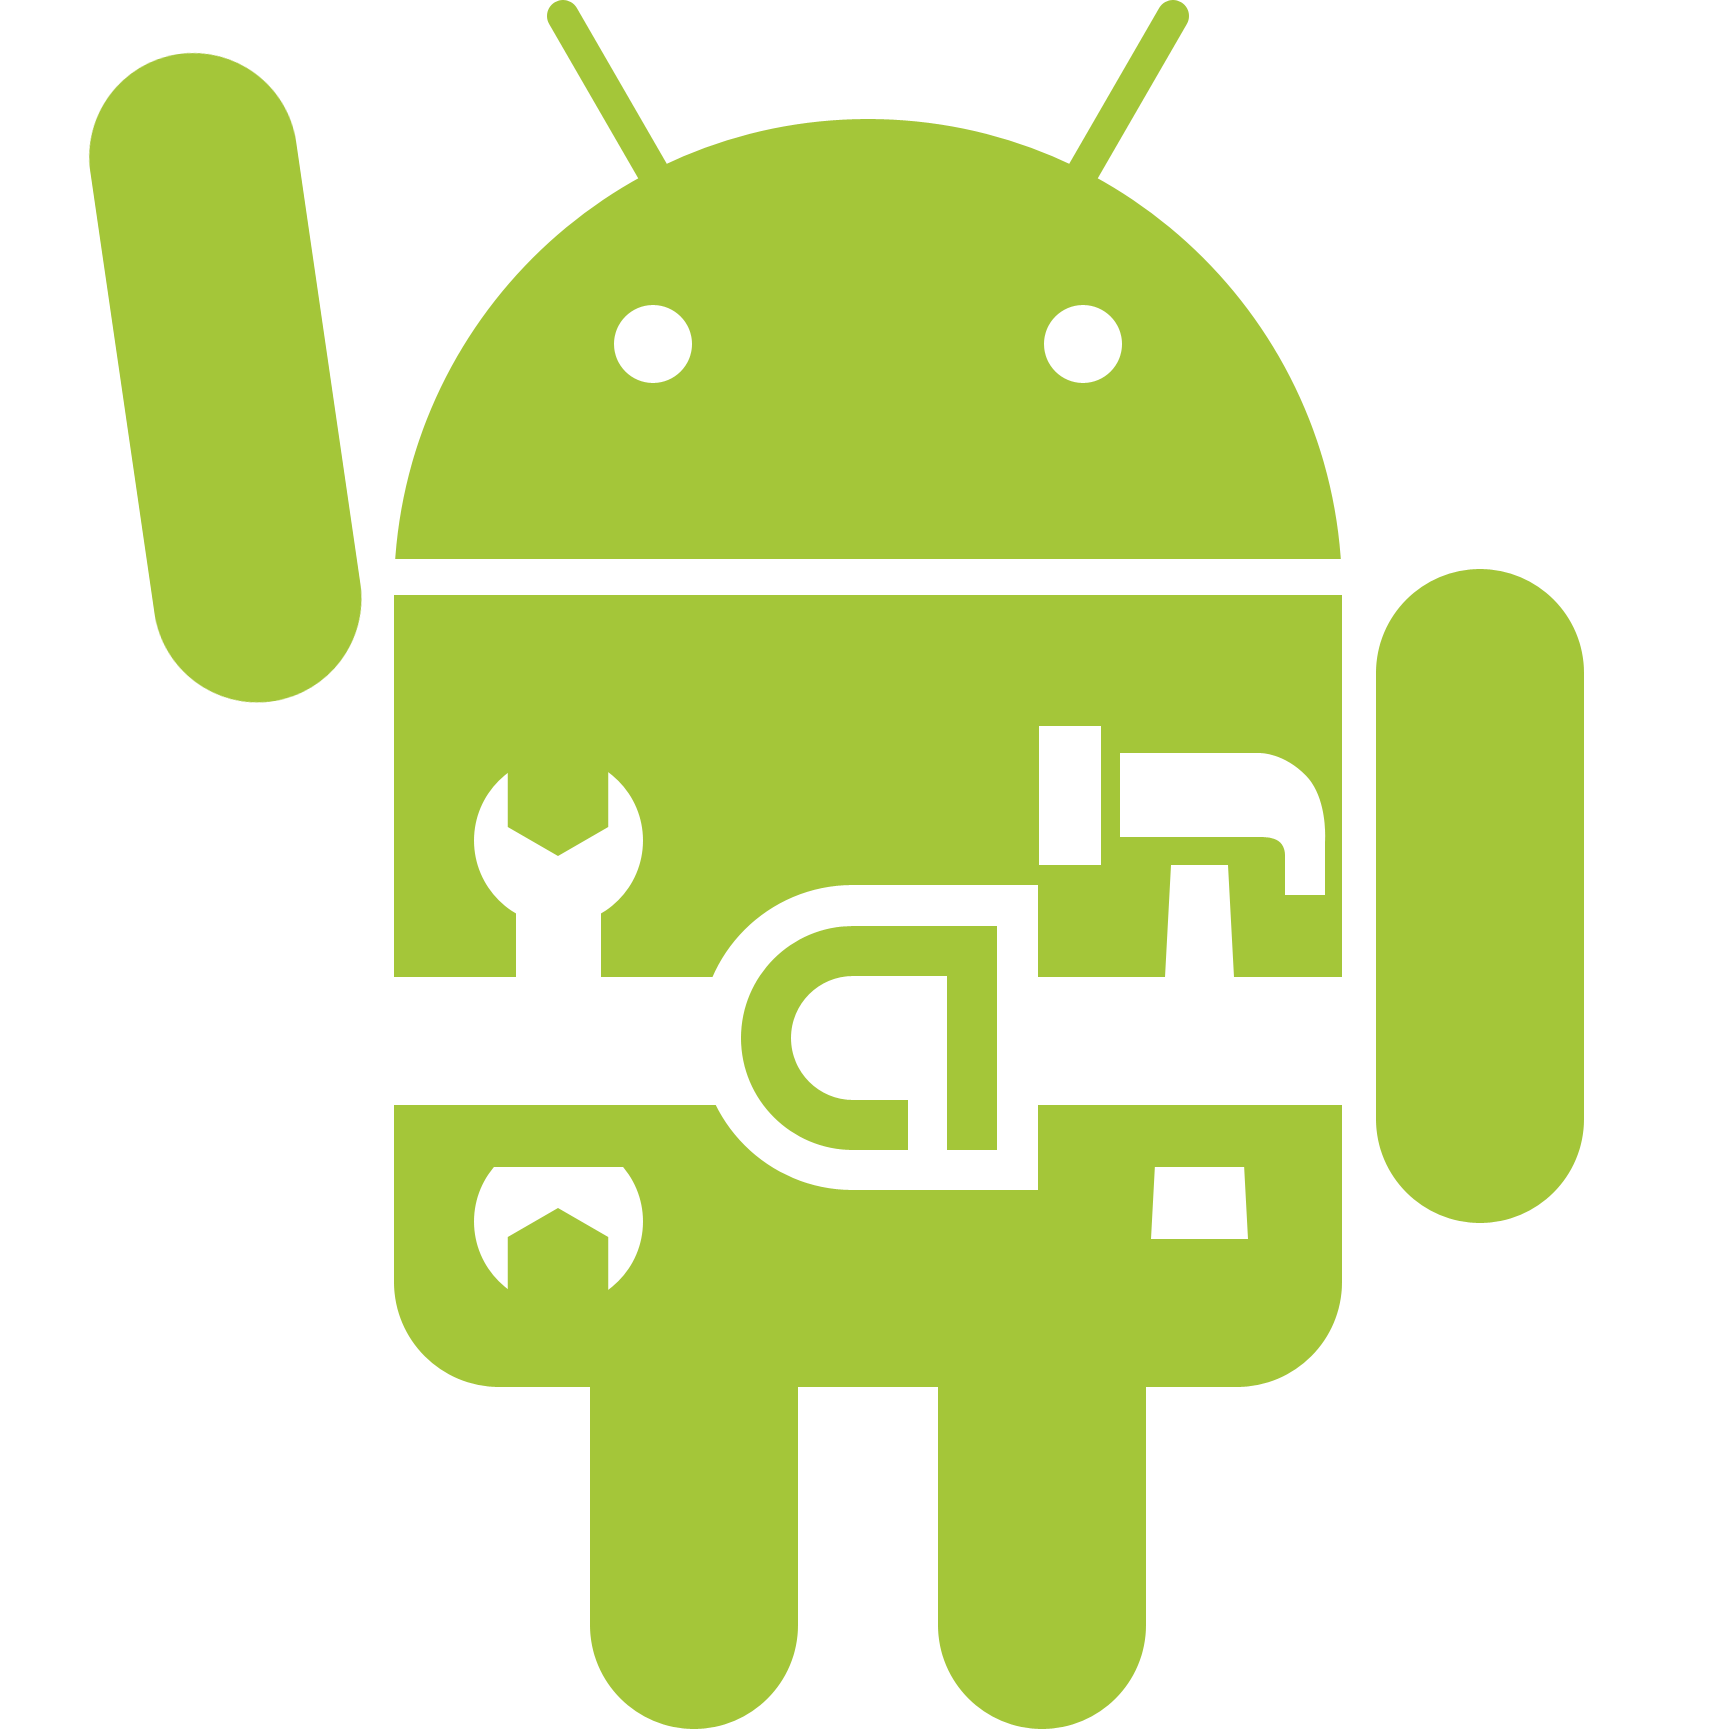 Use Wi-Fi rather USB to connect to your Android device via ADB – All for Android, Android for All